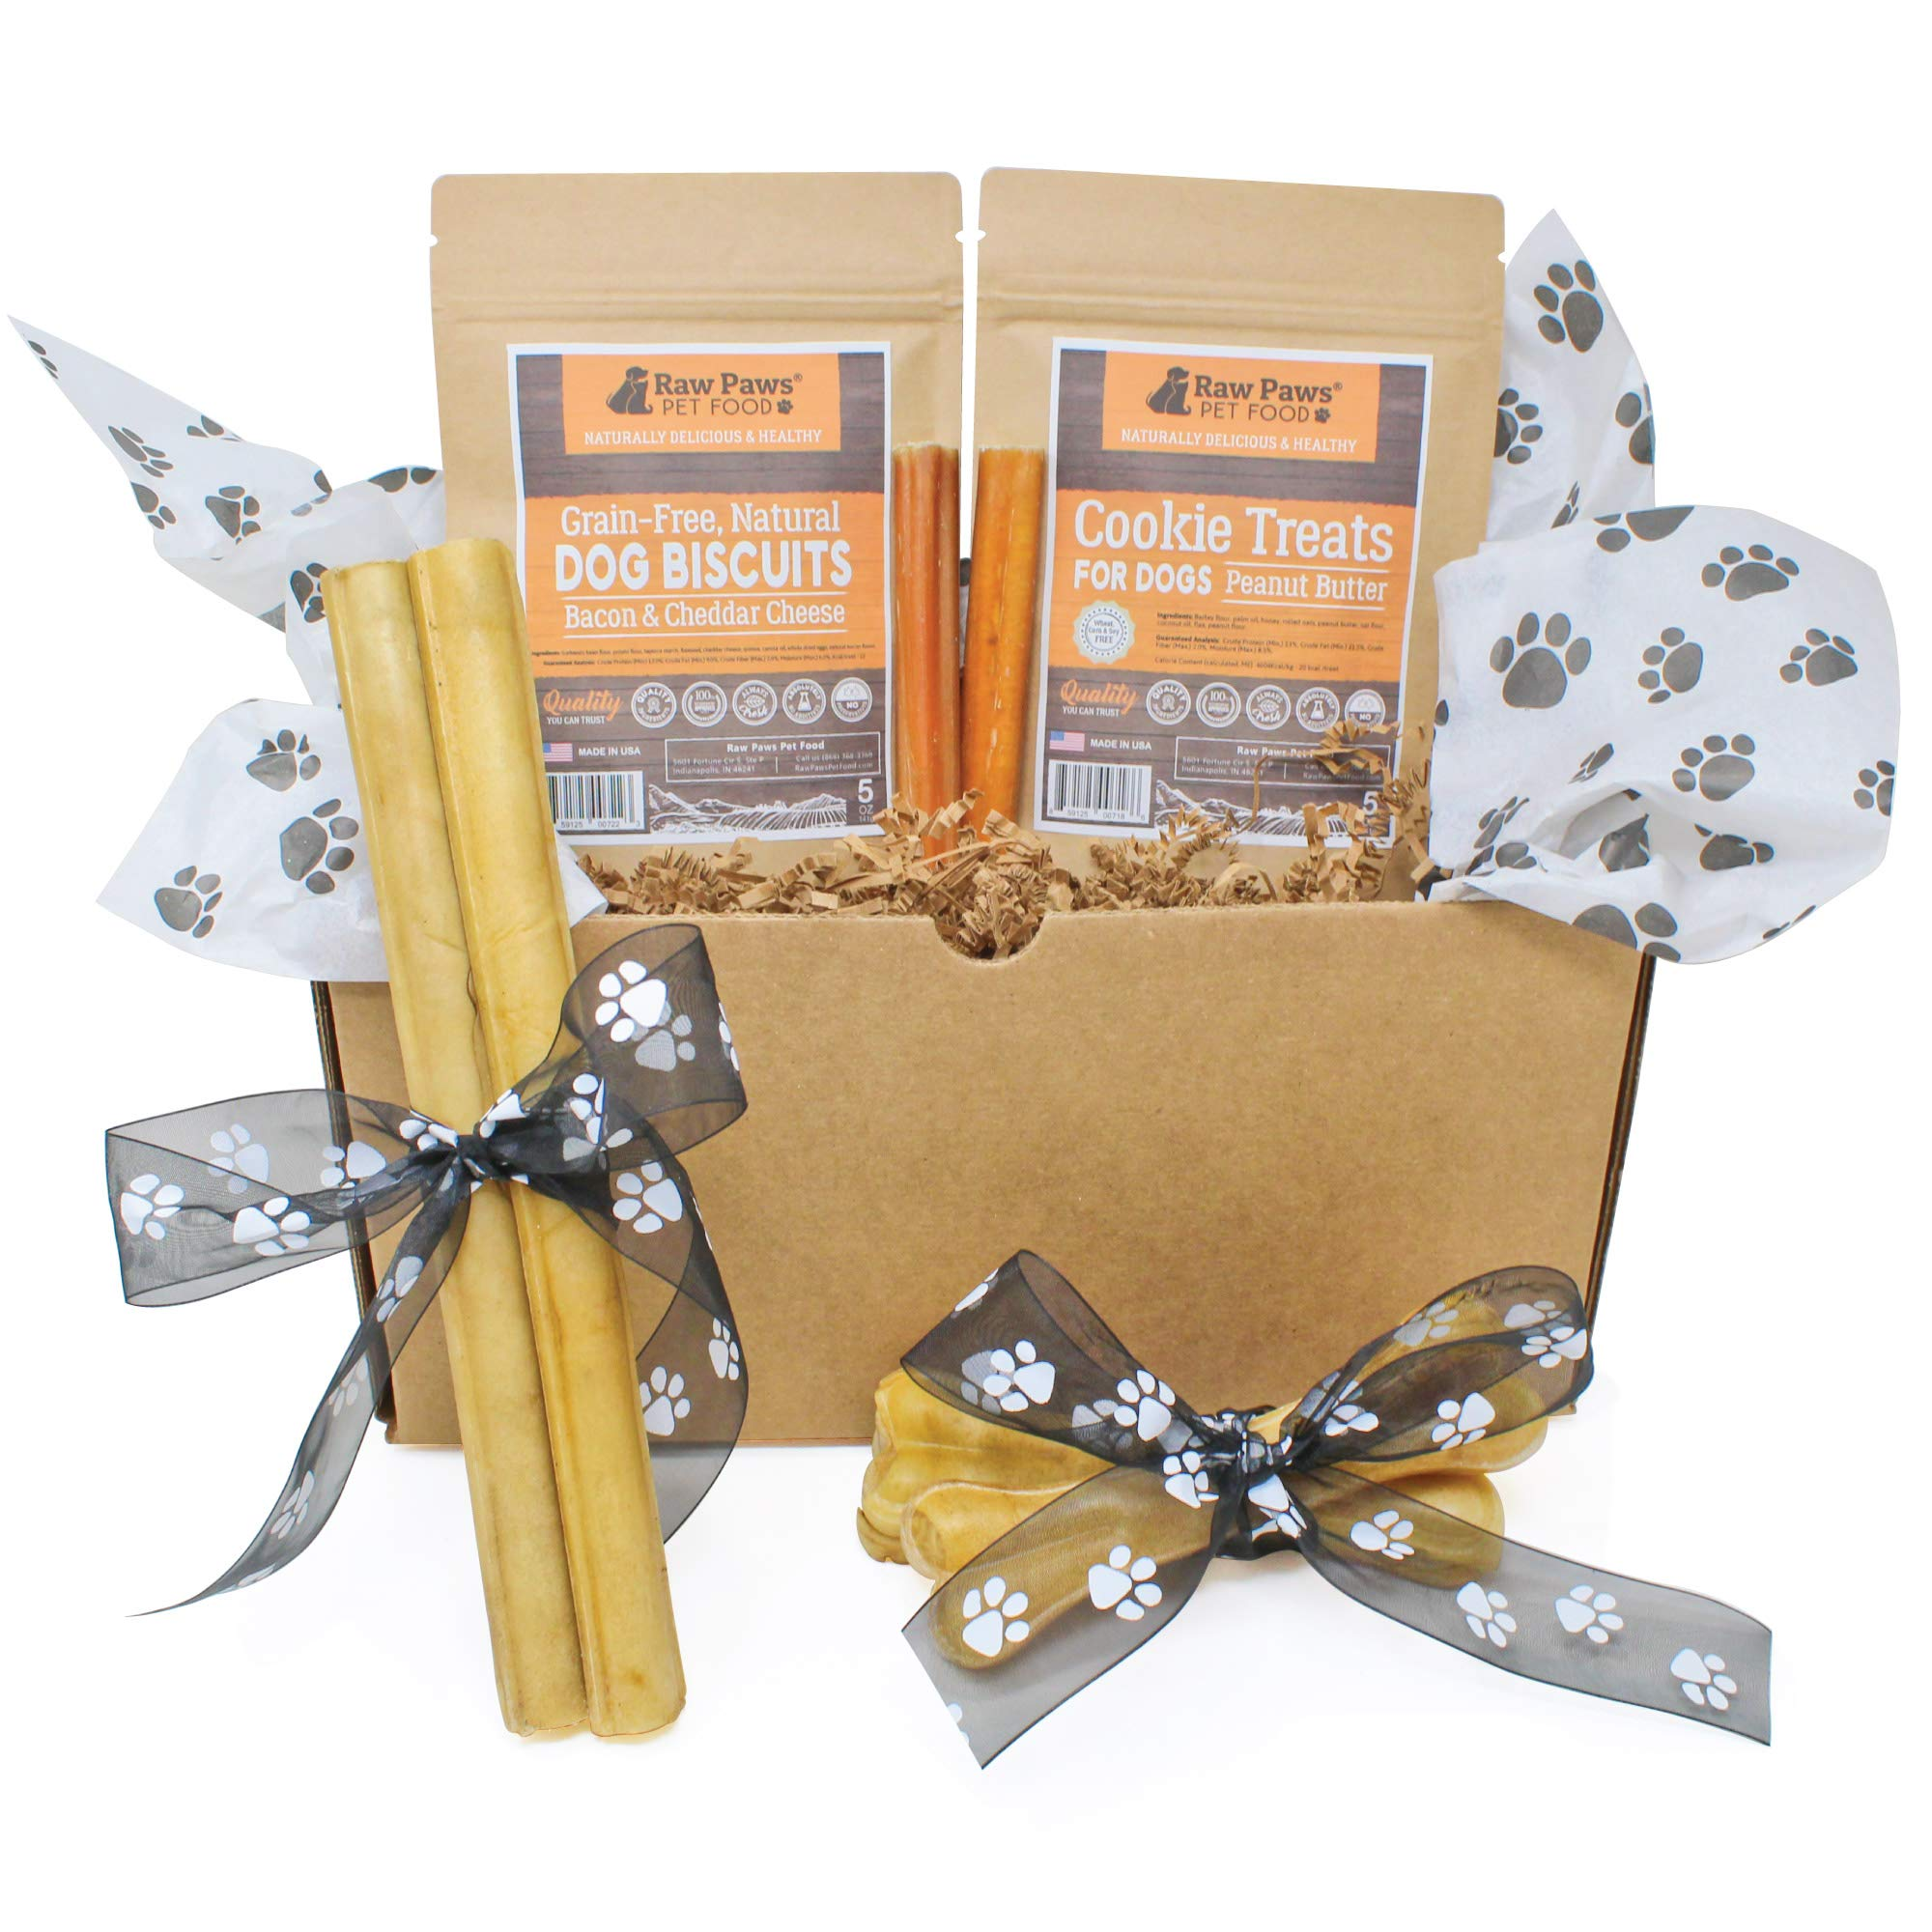 Raw Paws Pet Dog Birthday Treats - Dog Gift Box - Dog Chews Treats Variety Pack - Birthday Gifts Dogs - Dog Gift Basket - Natural Rawhide Chews, Bully Sticks, Biscuits & Cookies